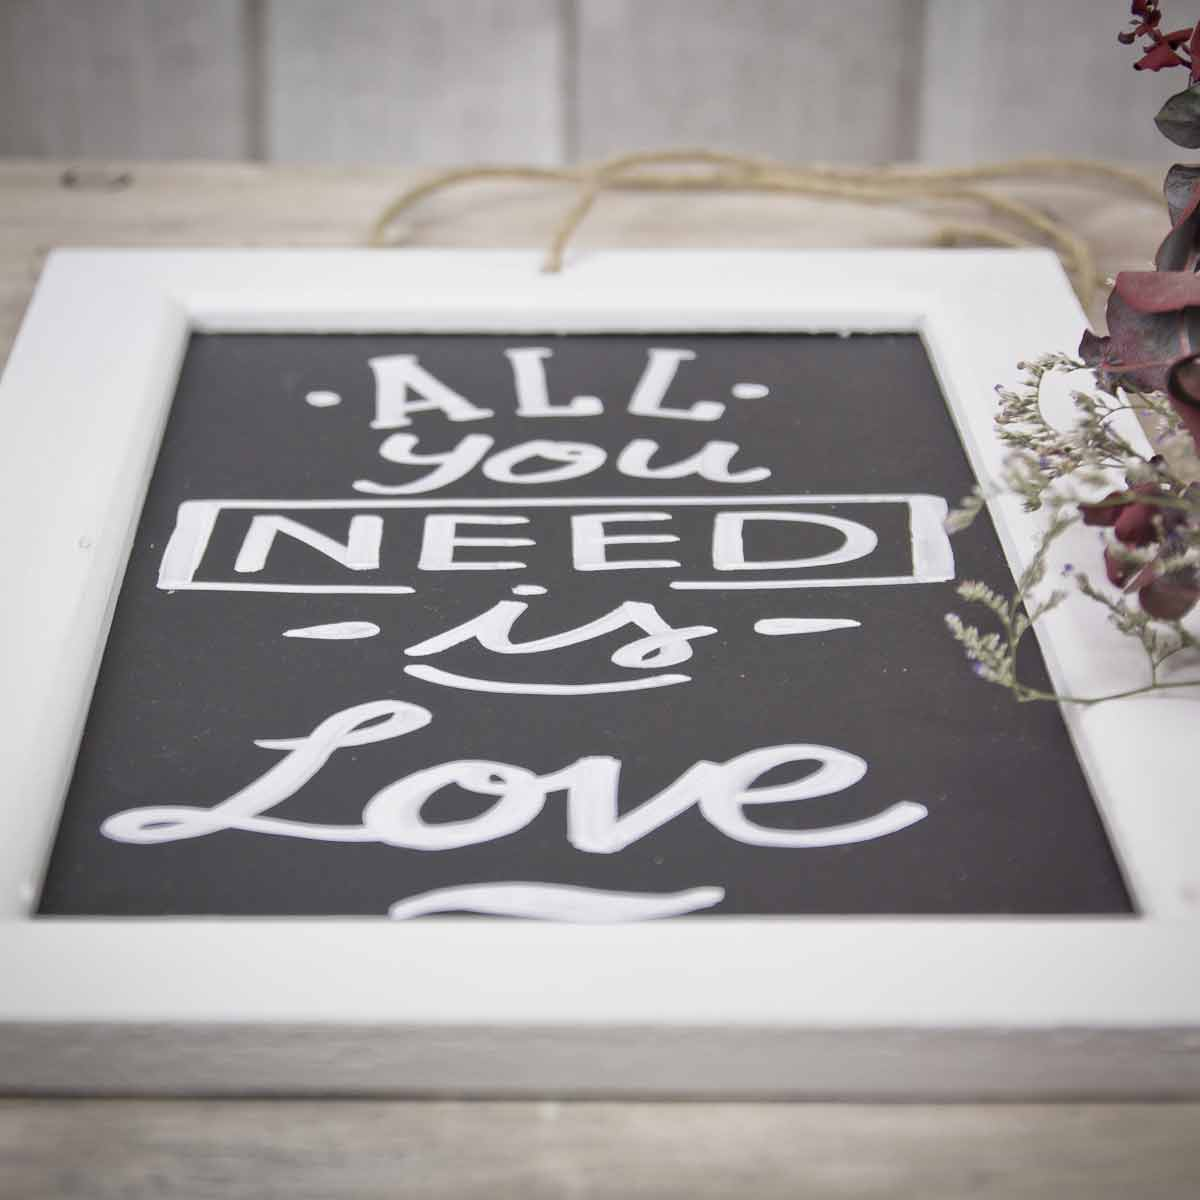 mrwonderful_pizarra_all-you-need-love_02